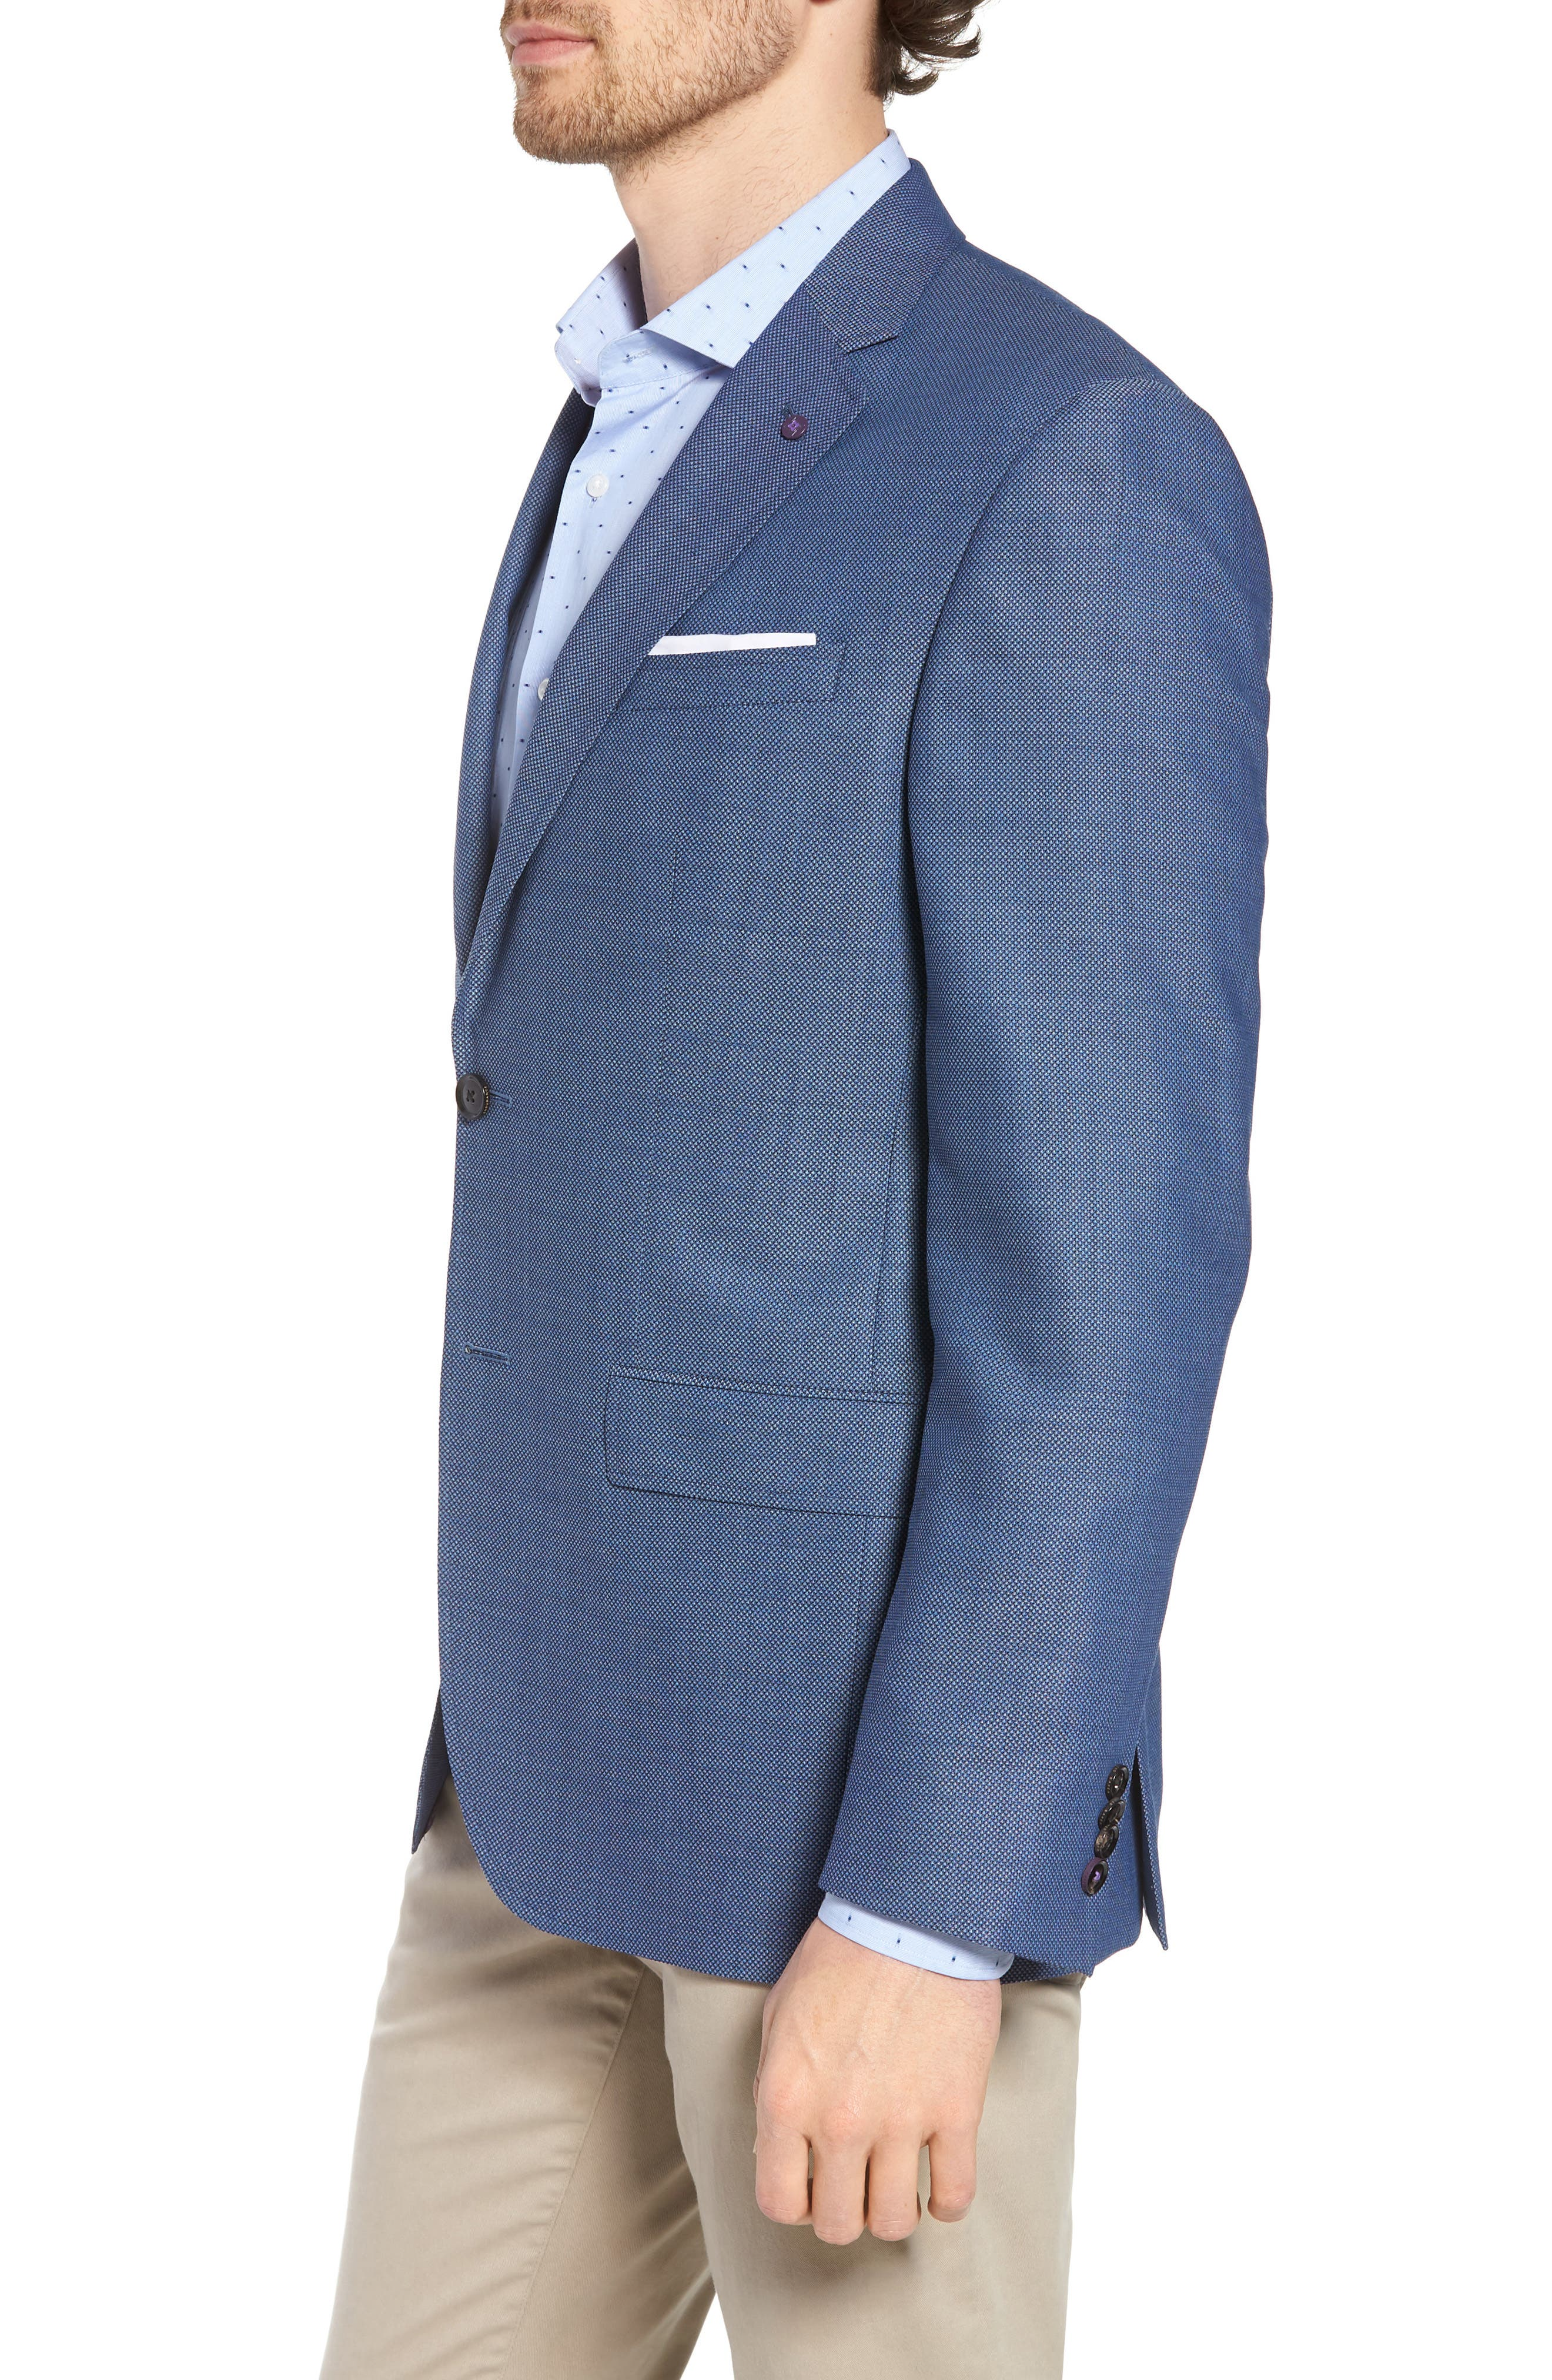 Jay Trim Fit Wool Blazer,                             Alternate thumbnail 3, color,                             400